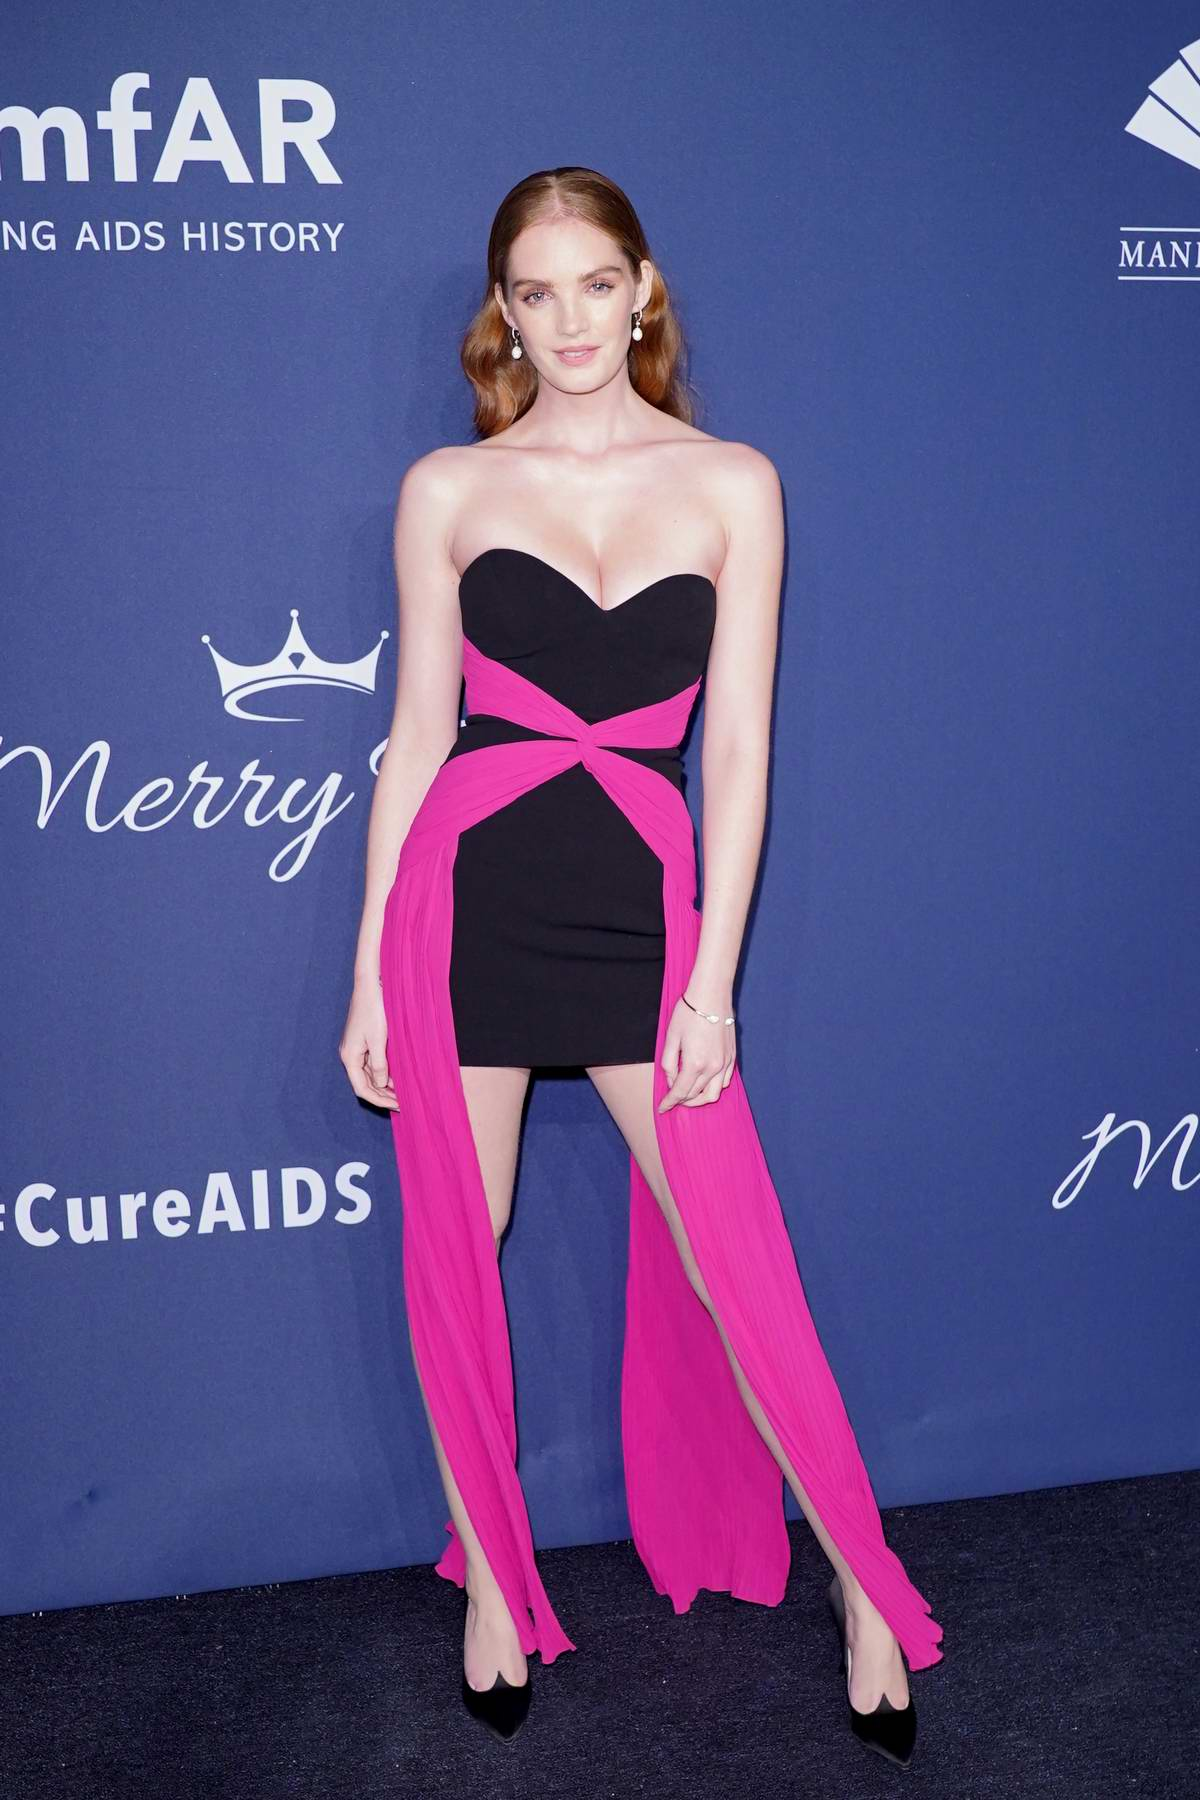 Alexina Graham attends the 22nd annual amfAR Gala Benefit for AIDS Research in New York City